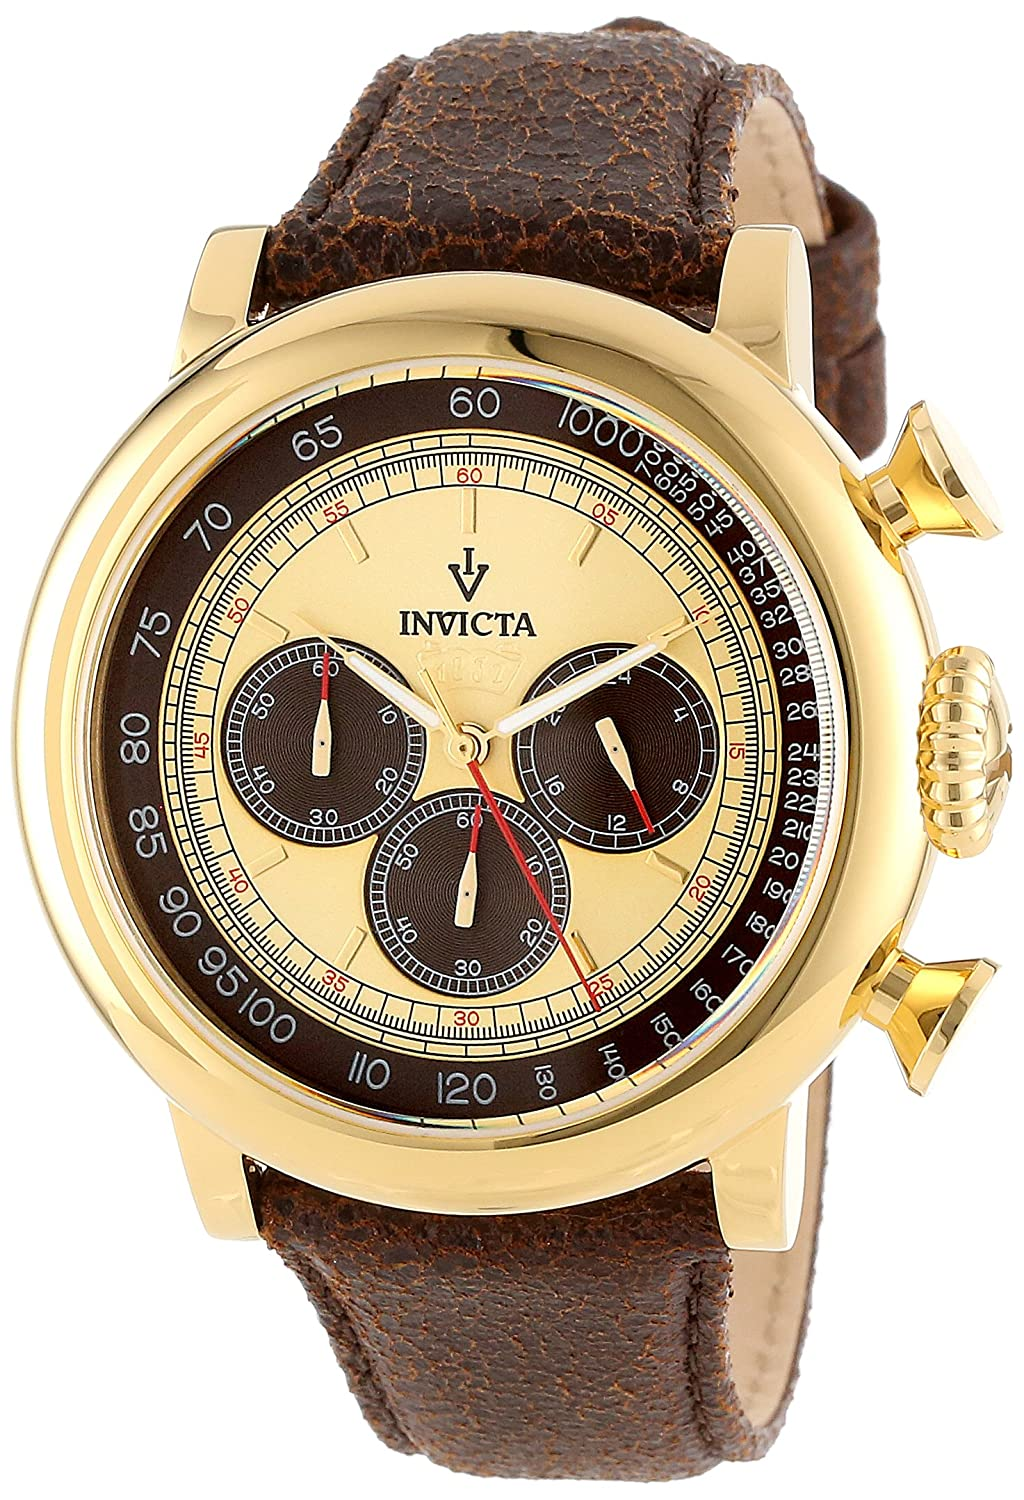 Invicta Men s 13058 Vintage Gold-Tone Stainless Steel Watch with Distressed Leather Band